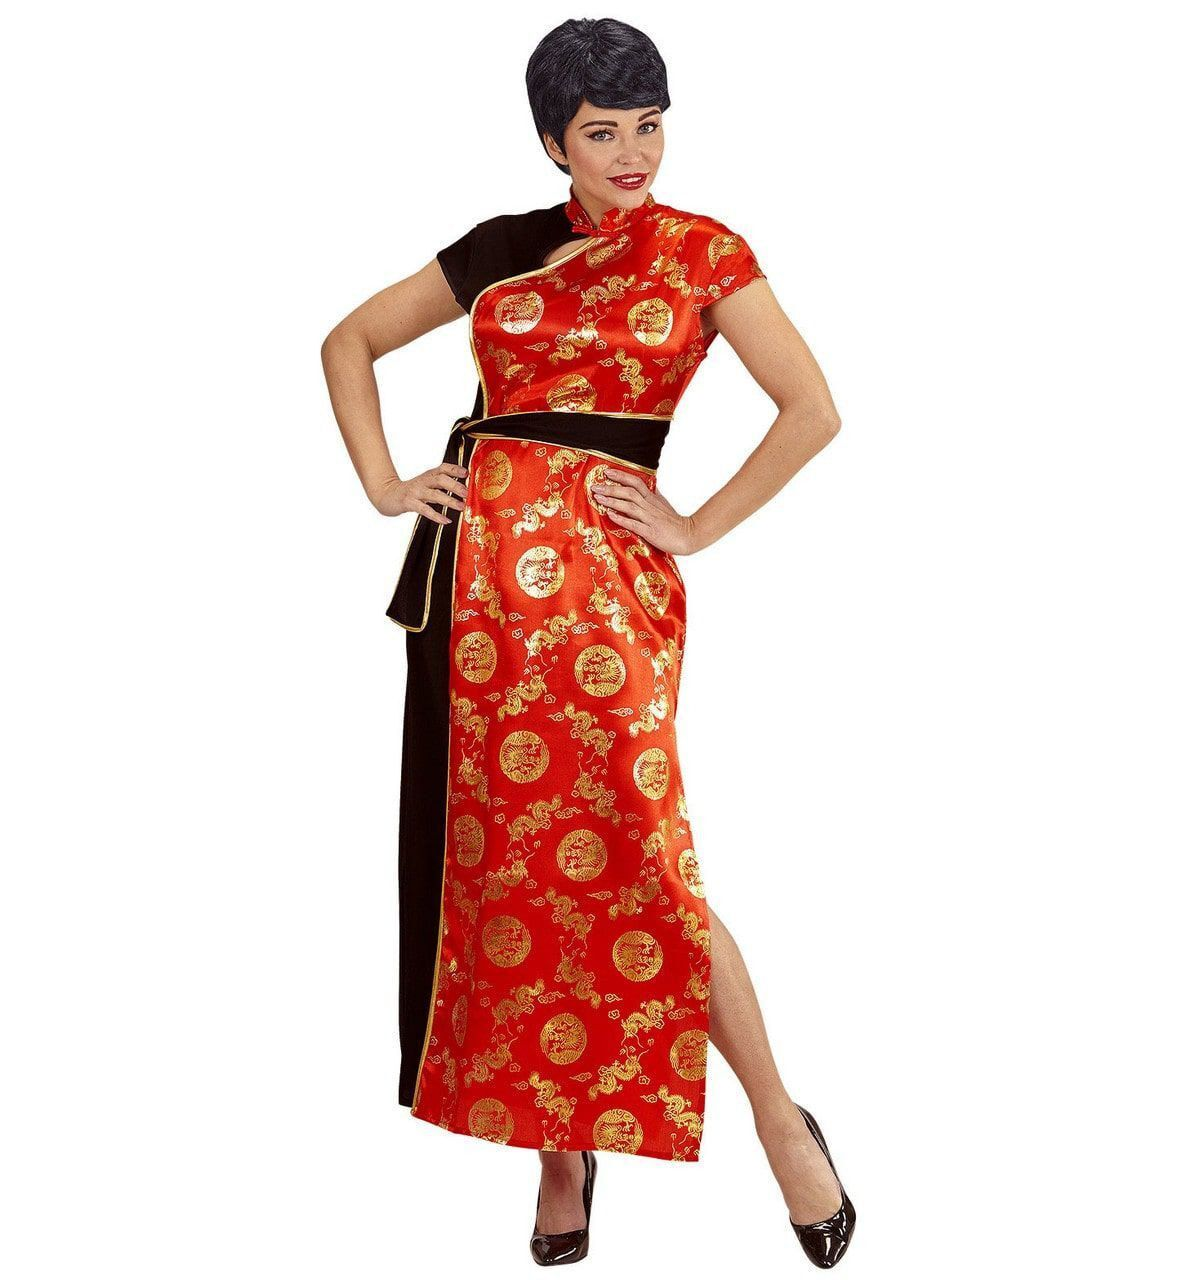 China girl outfit  miss ni hoa